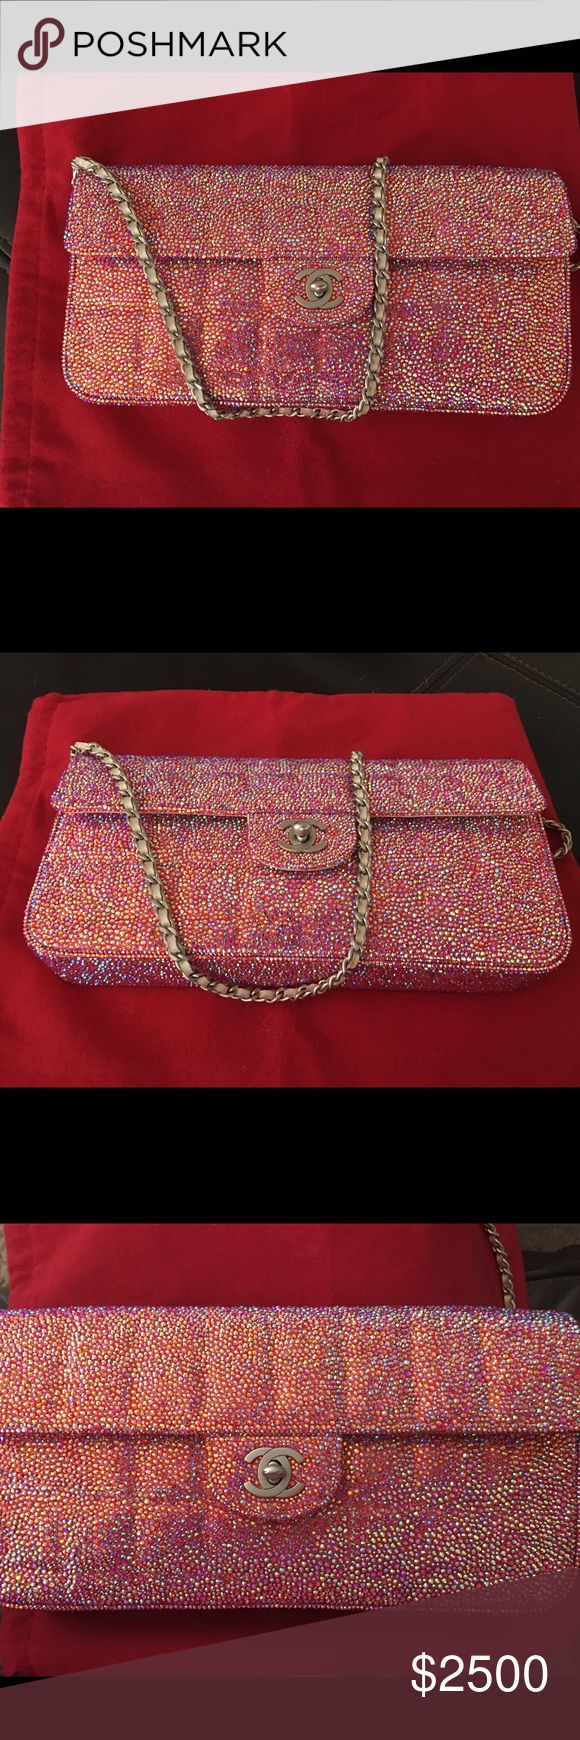 dc0fe4b71681 Authentic Chanel Swarovski crystal flap bag The chanel bag was customized  with pink Swarovski crystals!